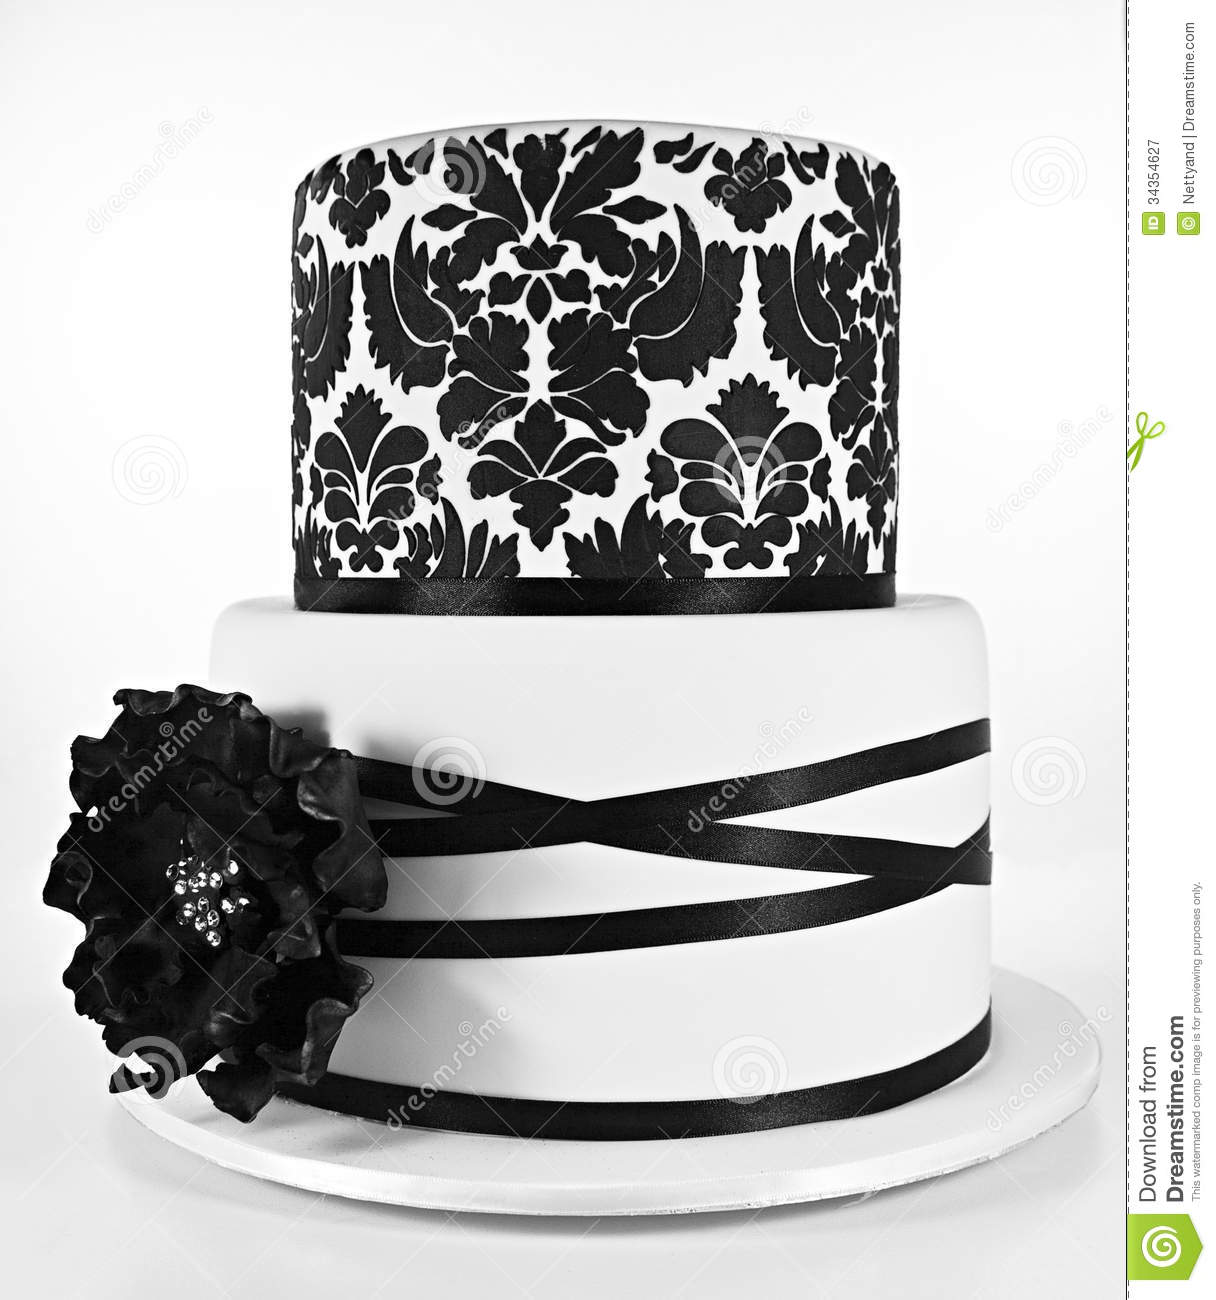 Black And White Two Tiered Cake Royalty Free Stock